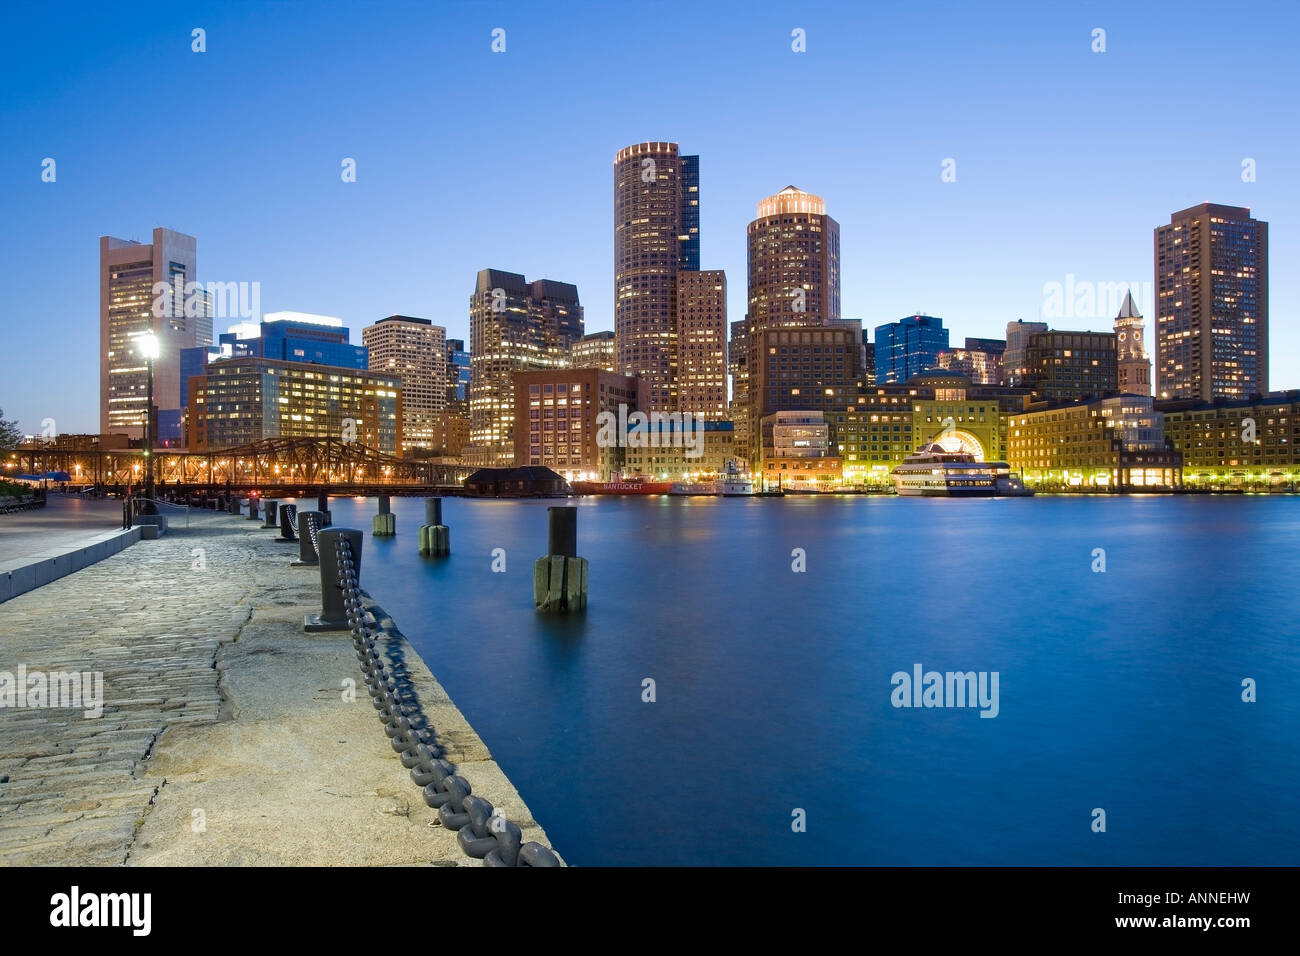 Estados Unidos Boston Massachusetts Skyline visto desde el embarcadero del ventilador Imagen De Stock